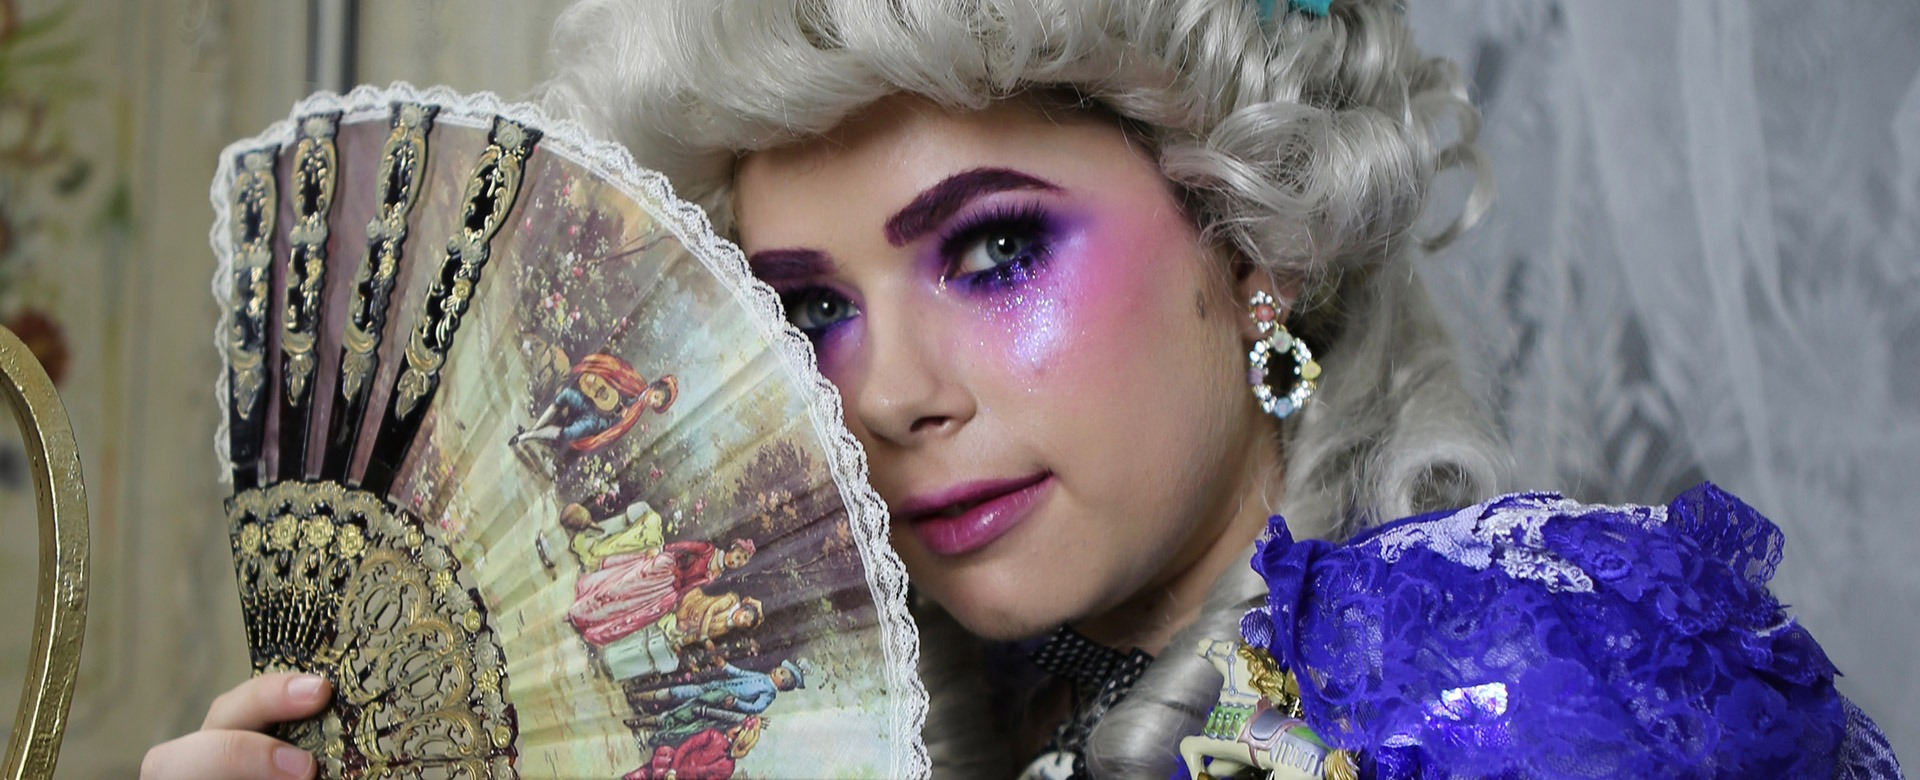 Ultra Violet Lair - Costuming with model Mimi